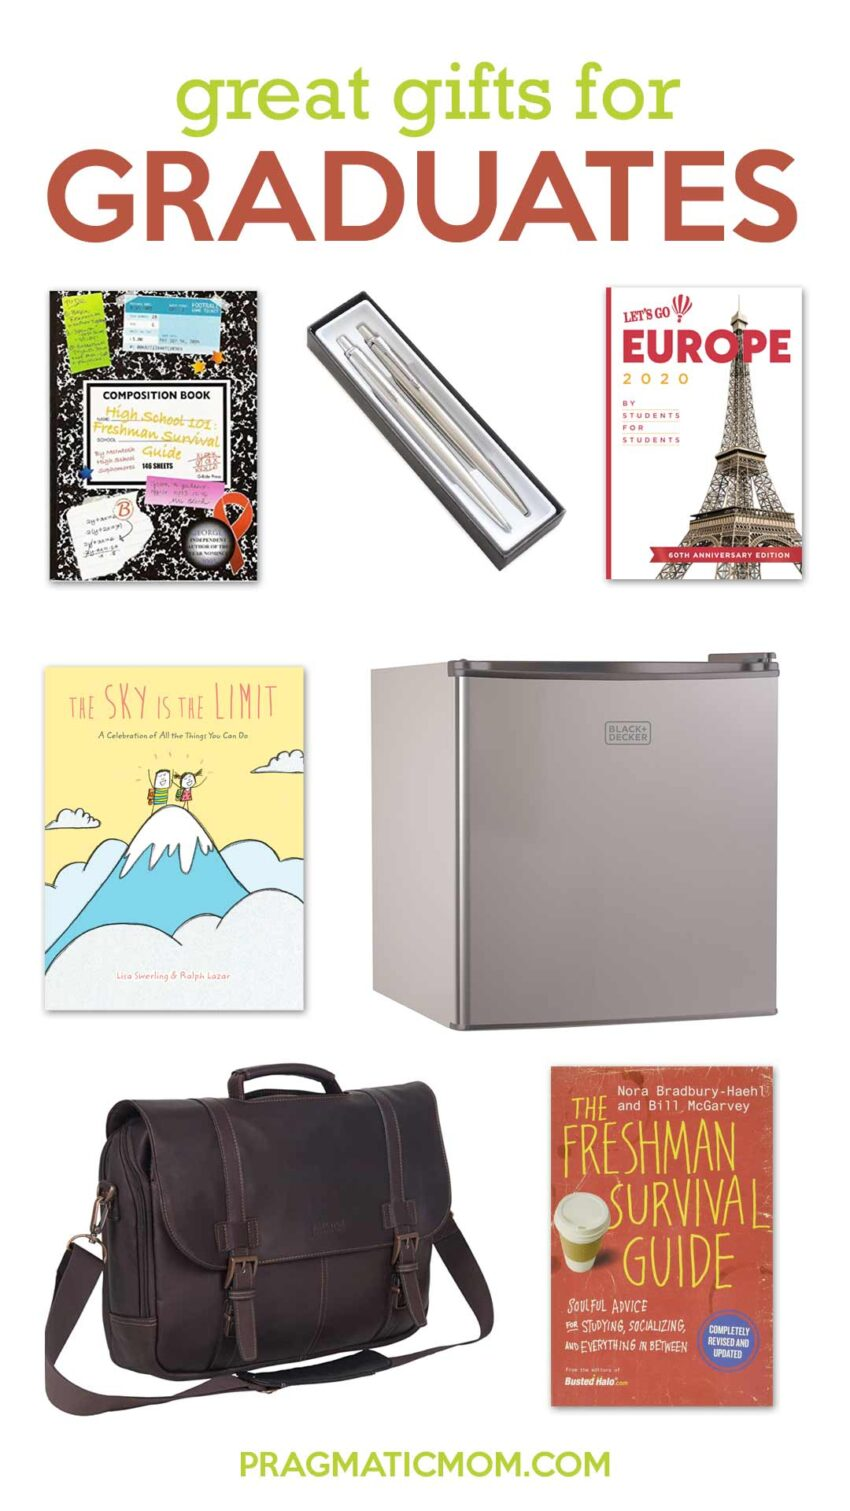 Great Gifts for Graduates